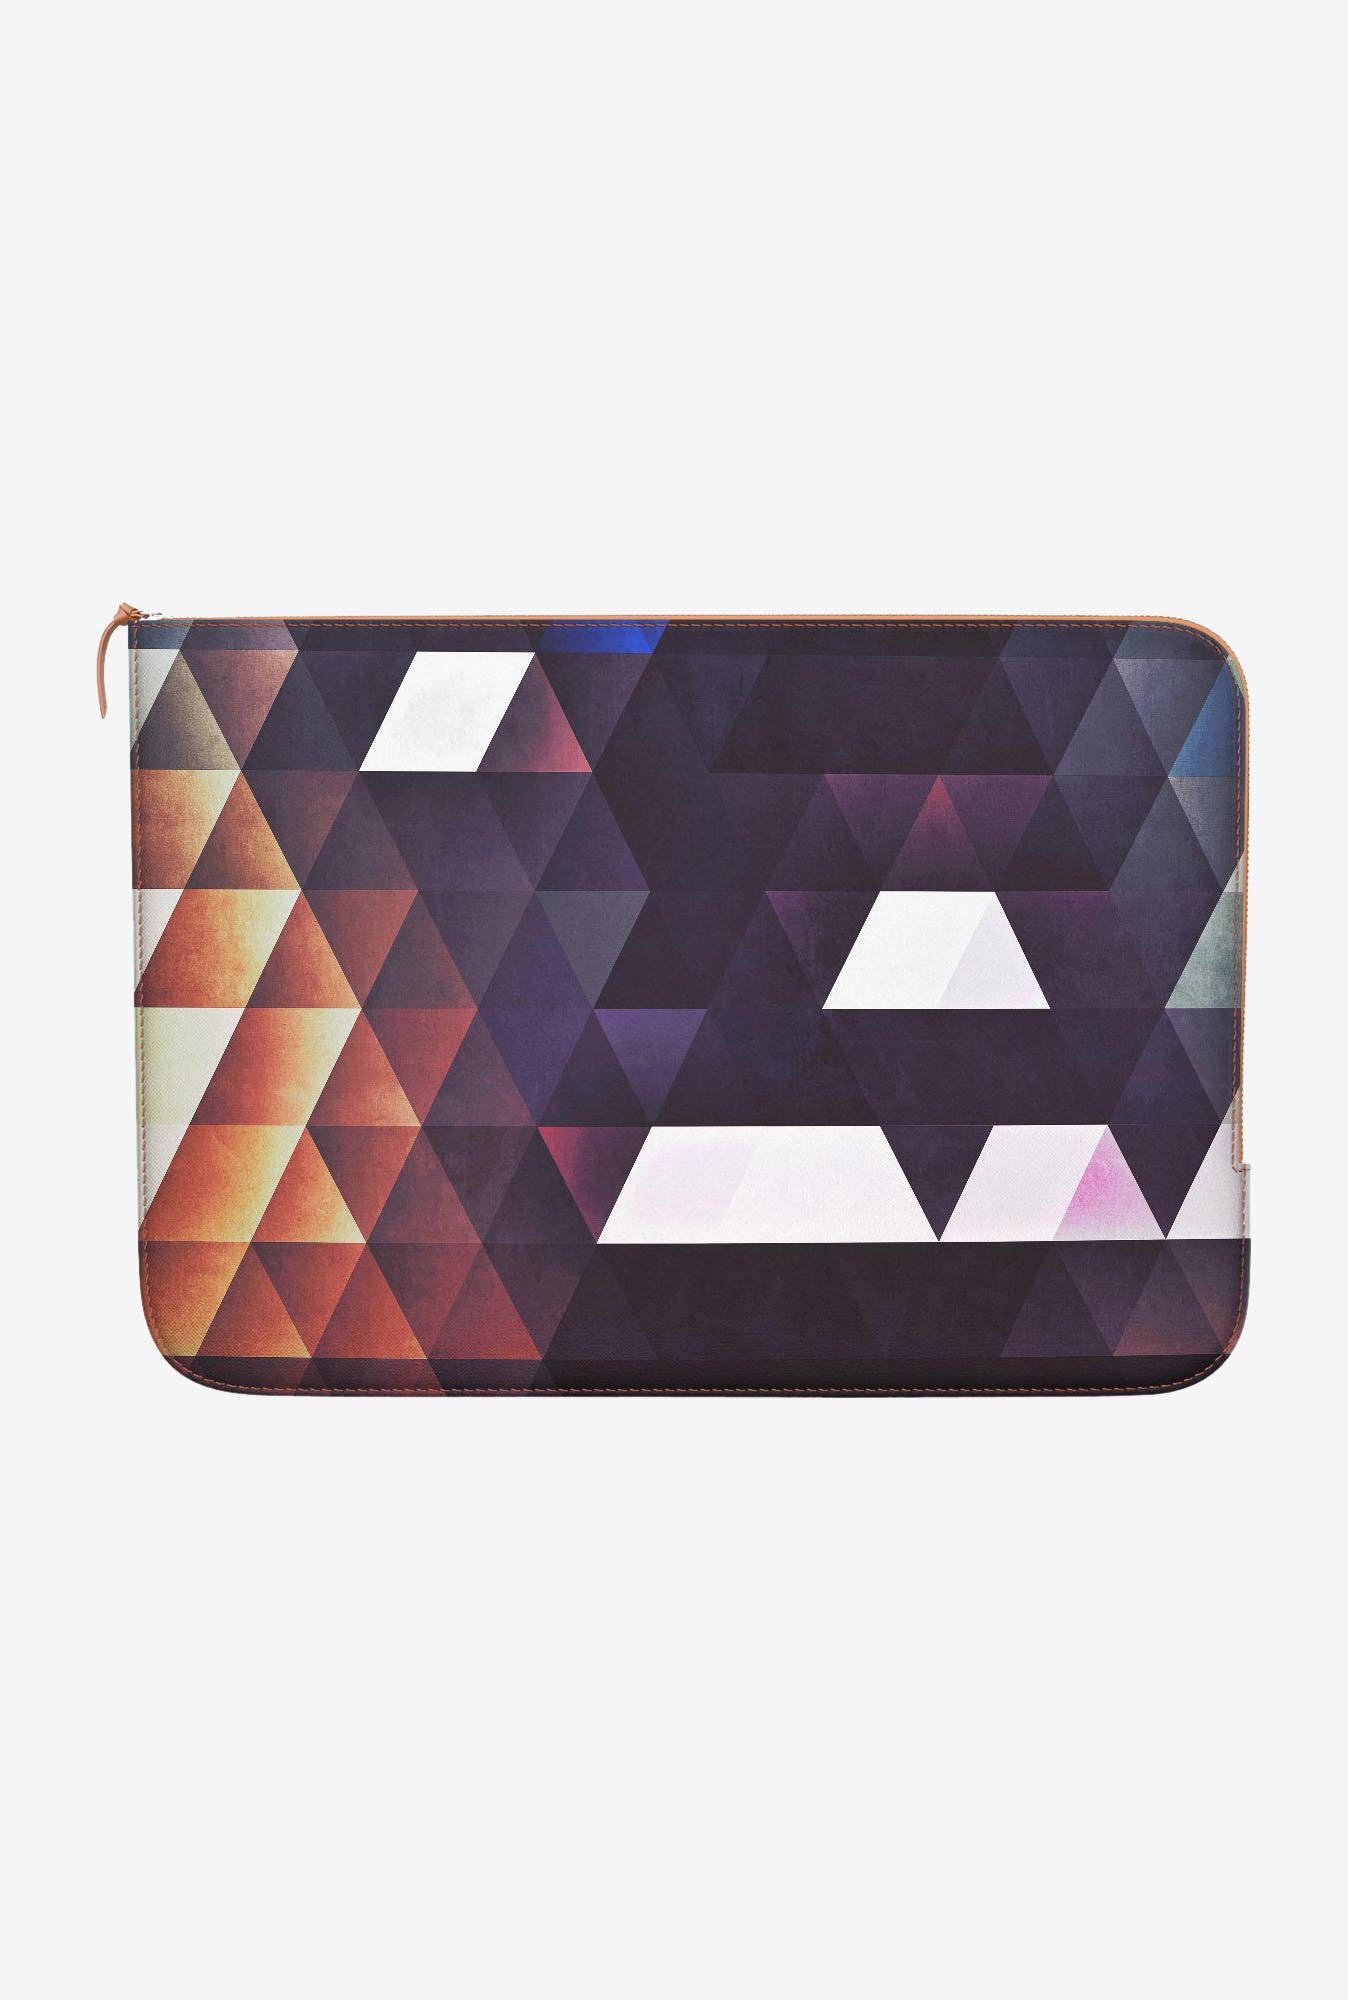 "DailyObjects Myga Myga Macbook Air 13"" Zippered Sleeve"